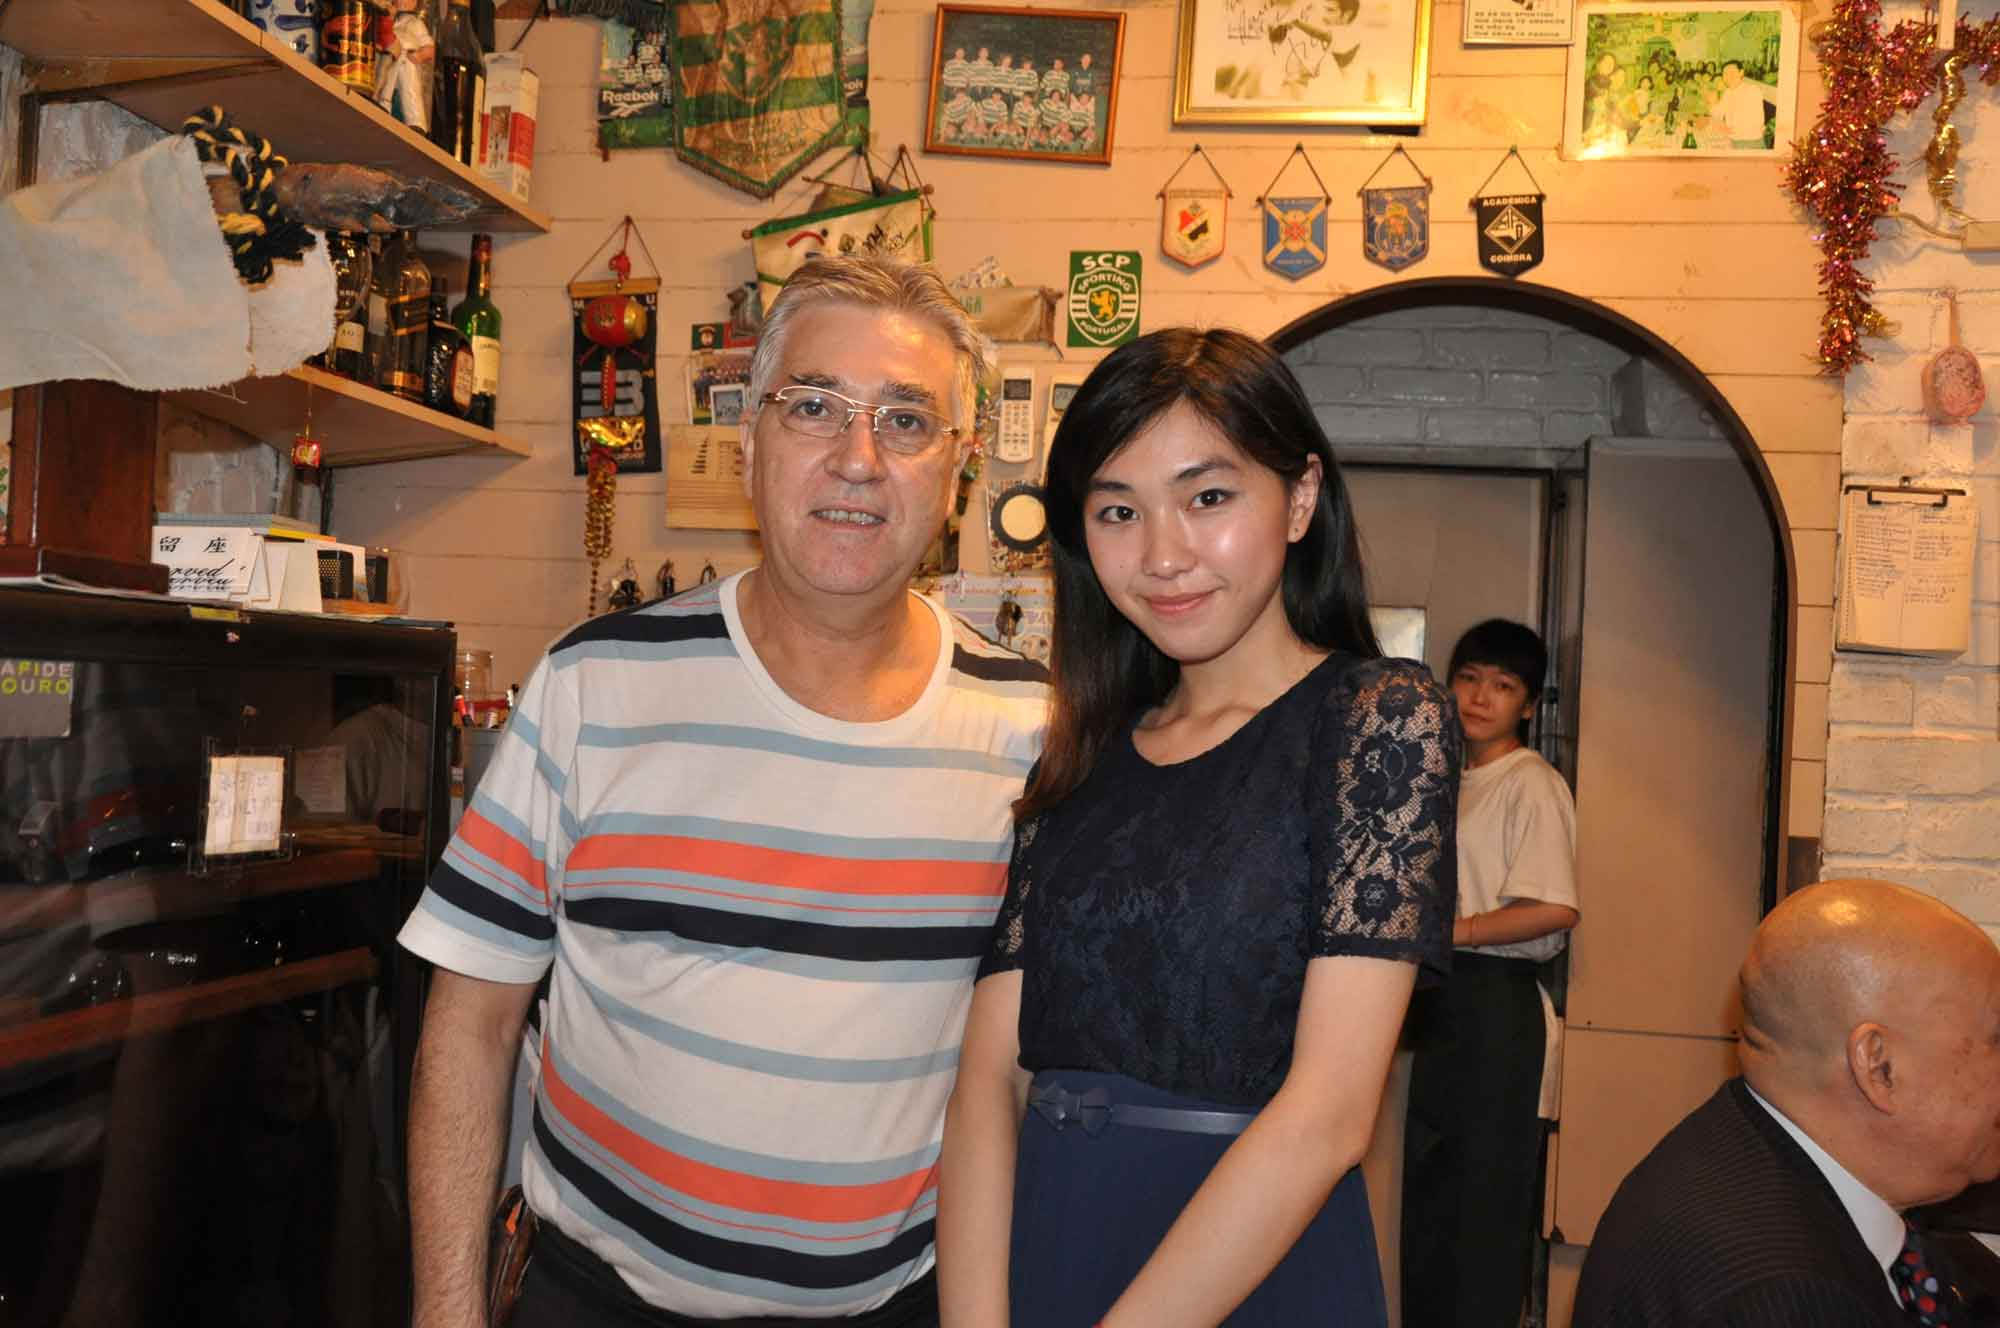 O Manuel Macau with pretty girl